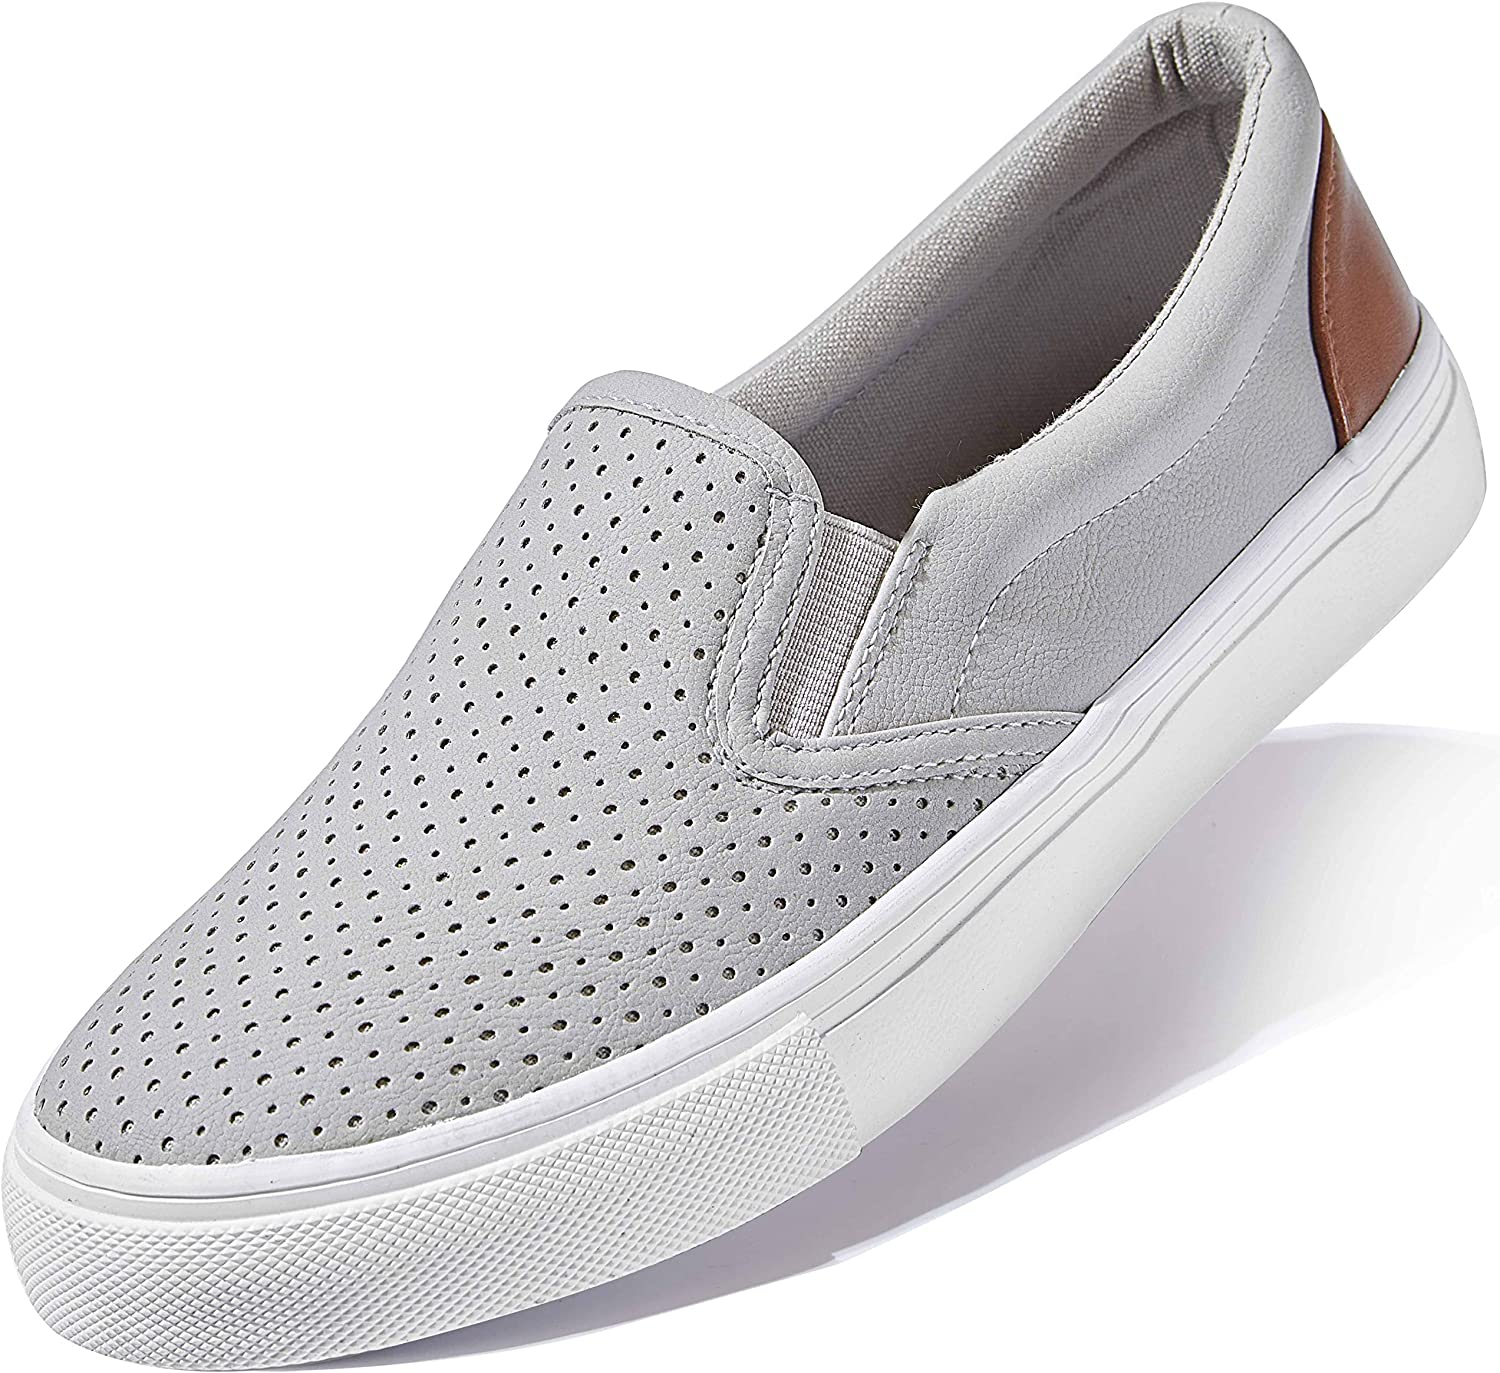 DailyShoes Women's Flat Memory Foam Slip On Sneakers Casual Loafers Round Comfortable Slip-on Shoes